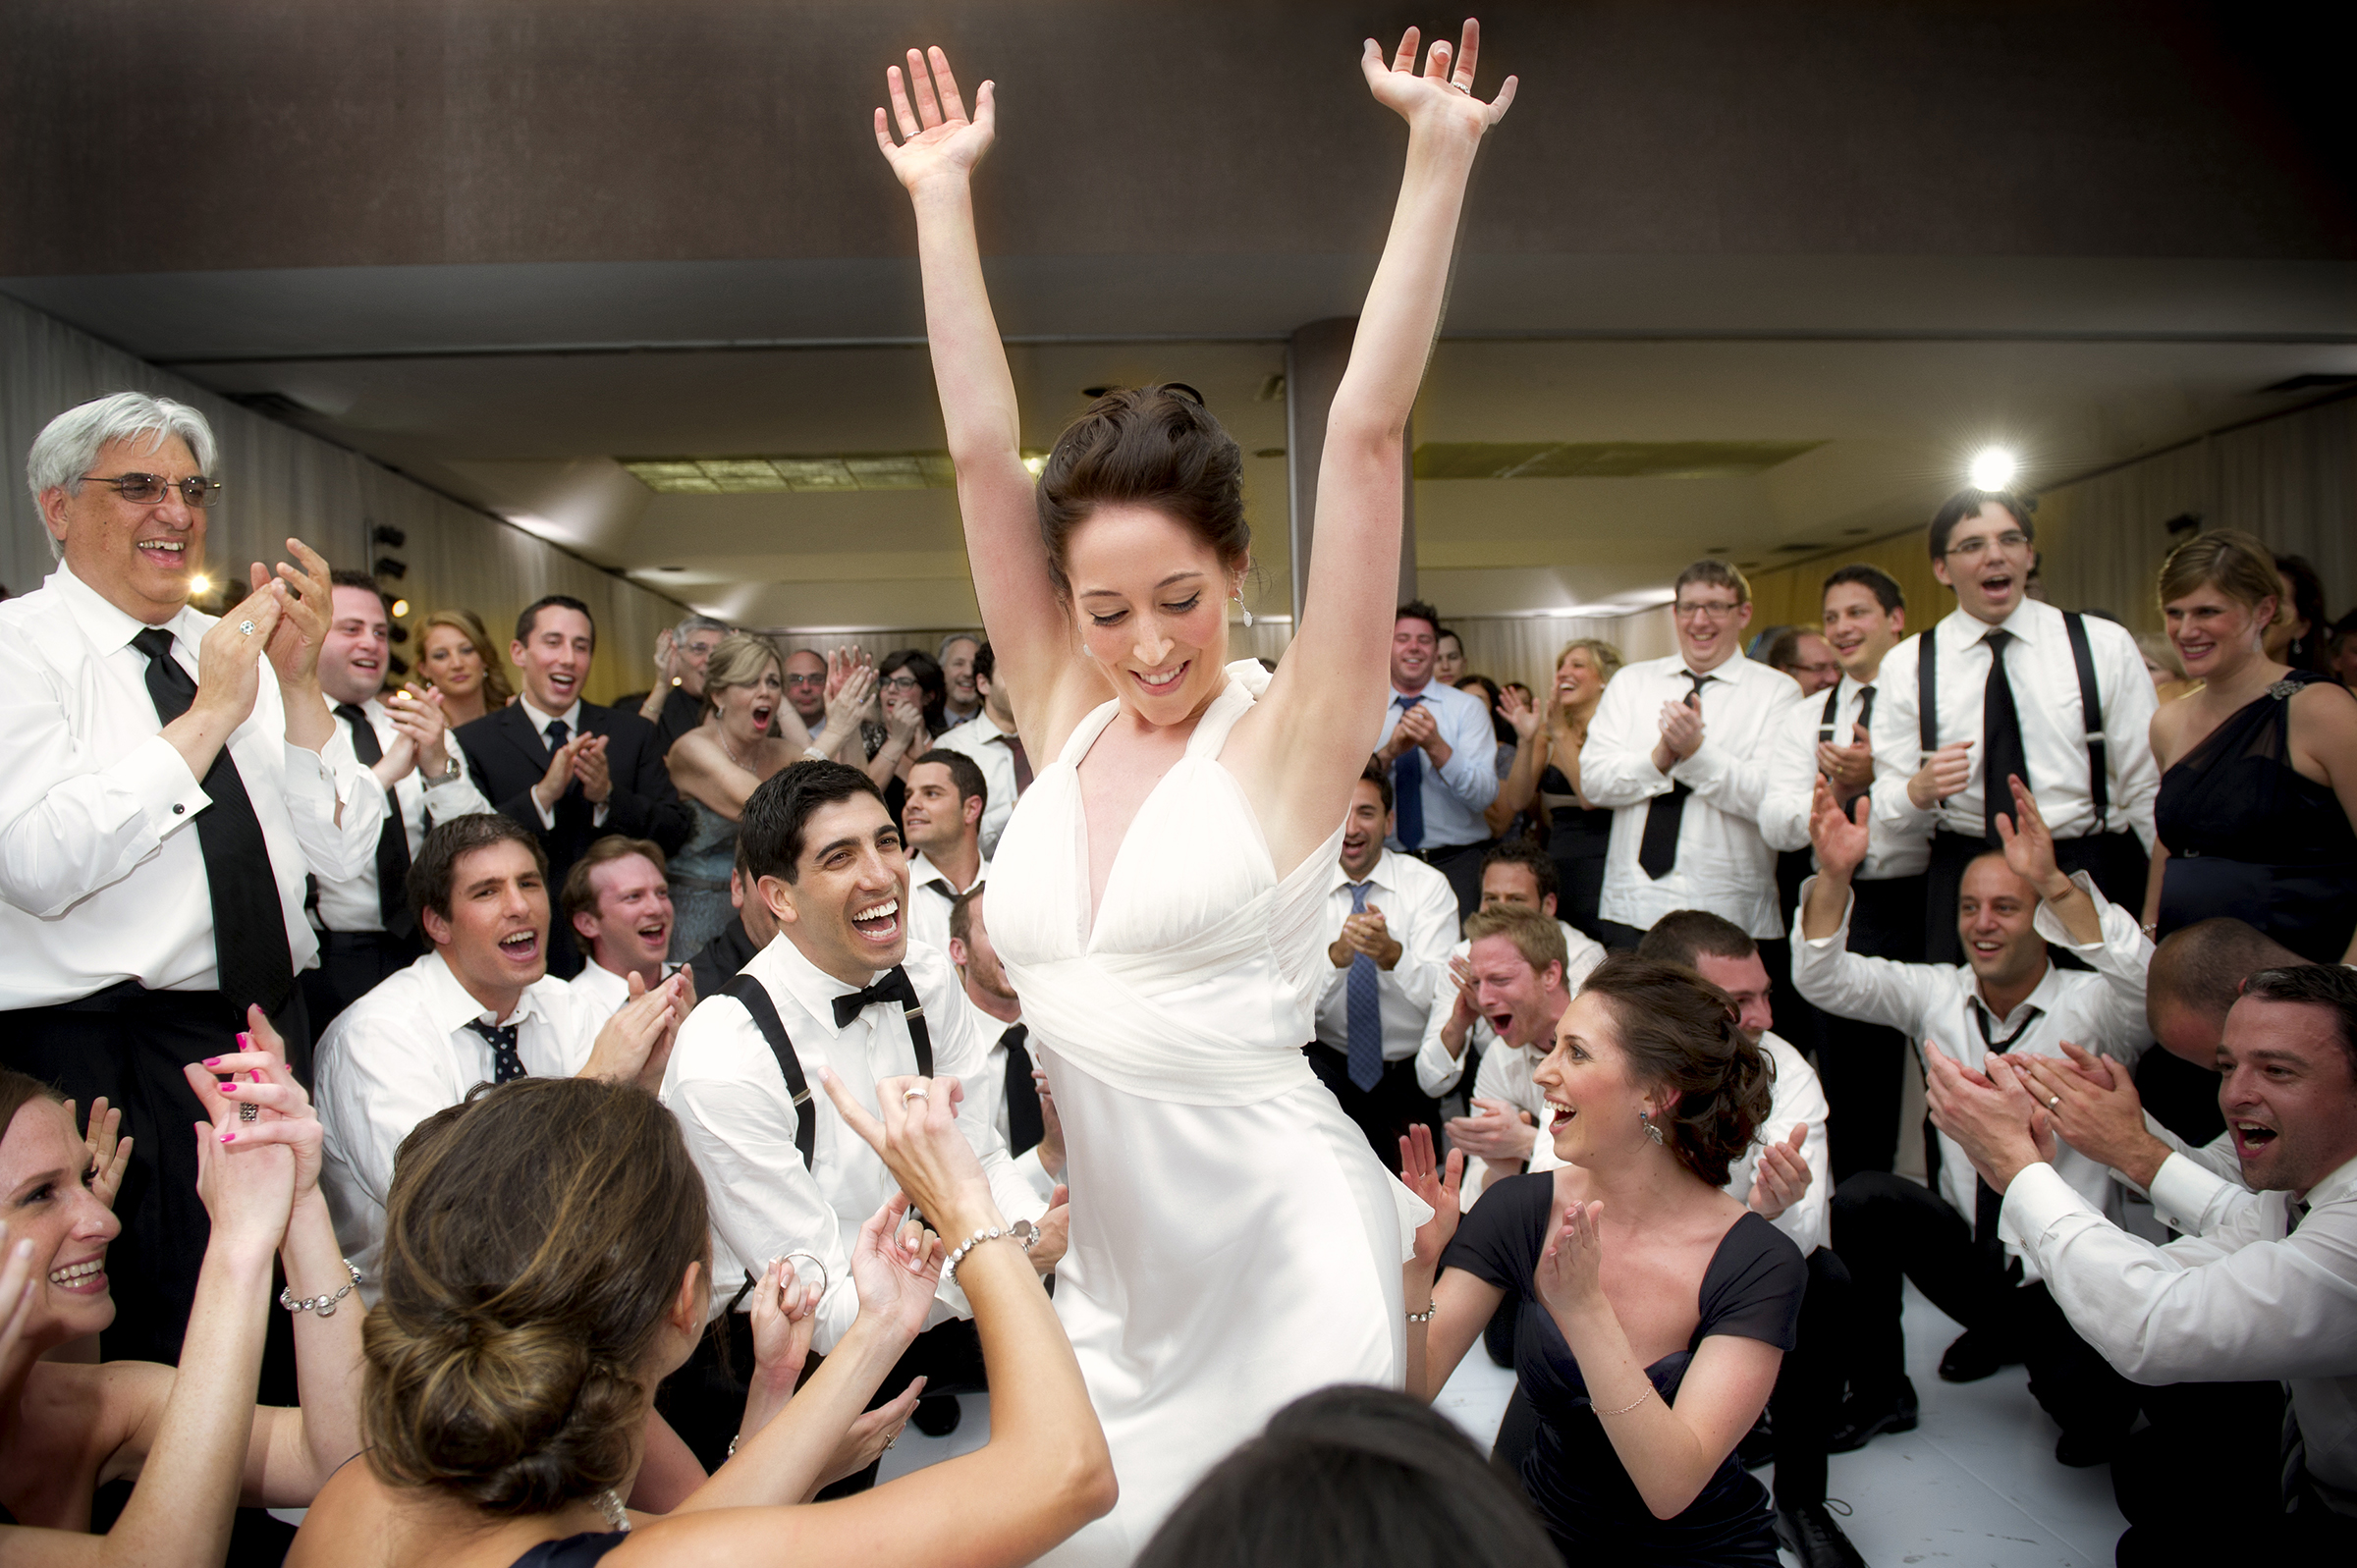 Bride dancing arms up amid guests - photo by Storey Wilkins Photography